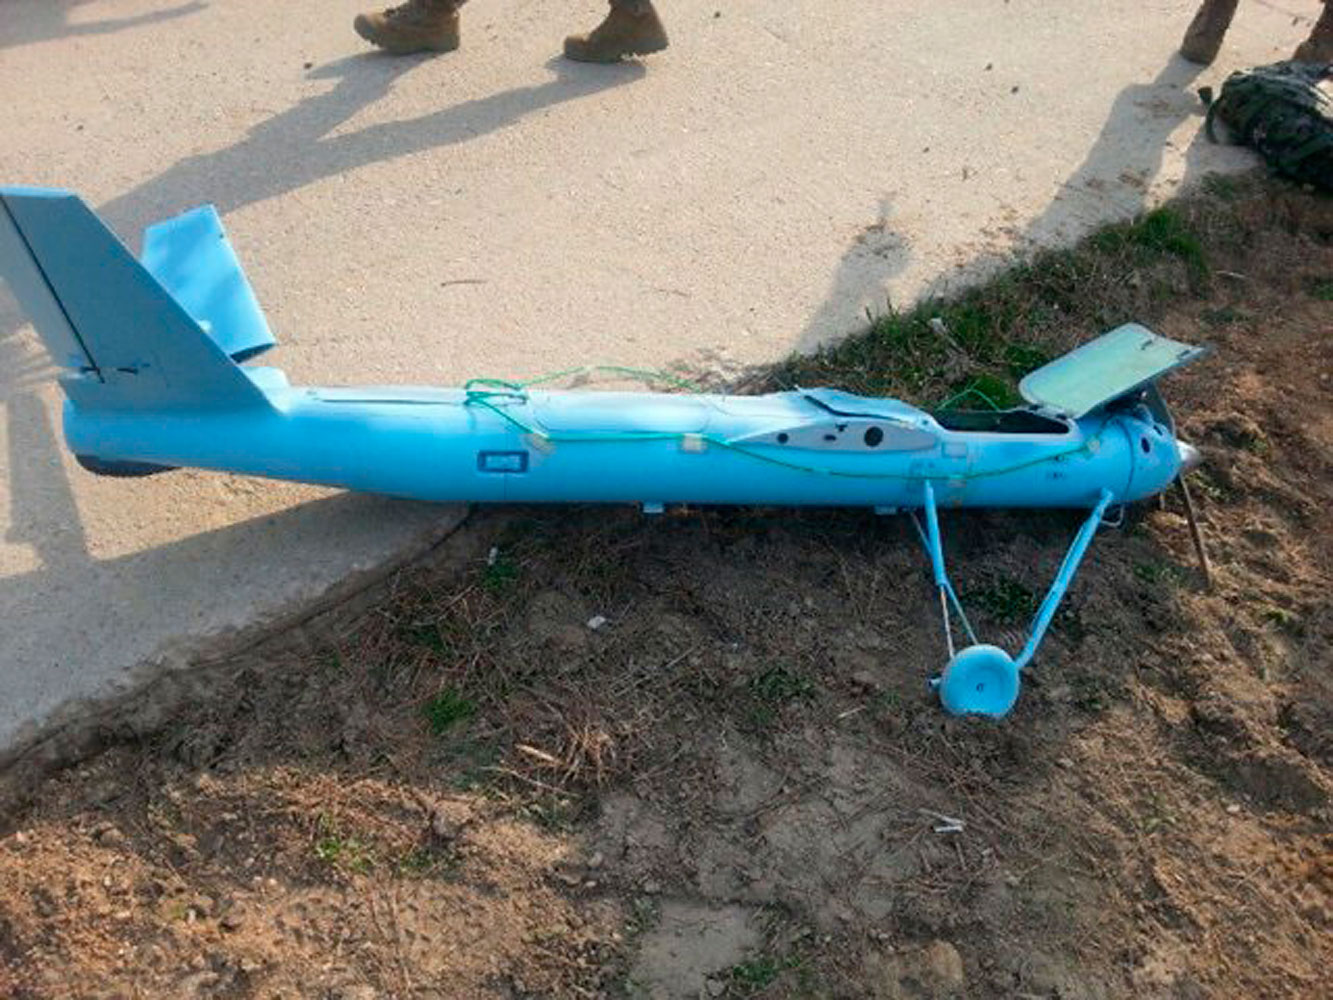 A crashed unmanned drone is seen on Baengnyeongdo, an South Korean island near the border with North Korea in a picture released by Yohnap on April 1, 2014. A South Korean military inquiry into a drone found on a border island has concluded that North Korea flew the unmanned aircraft to conduct reconnaissance missions, a media report said.